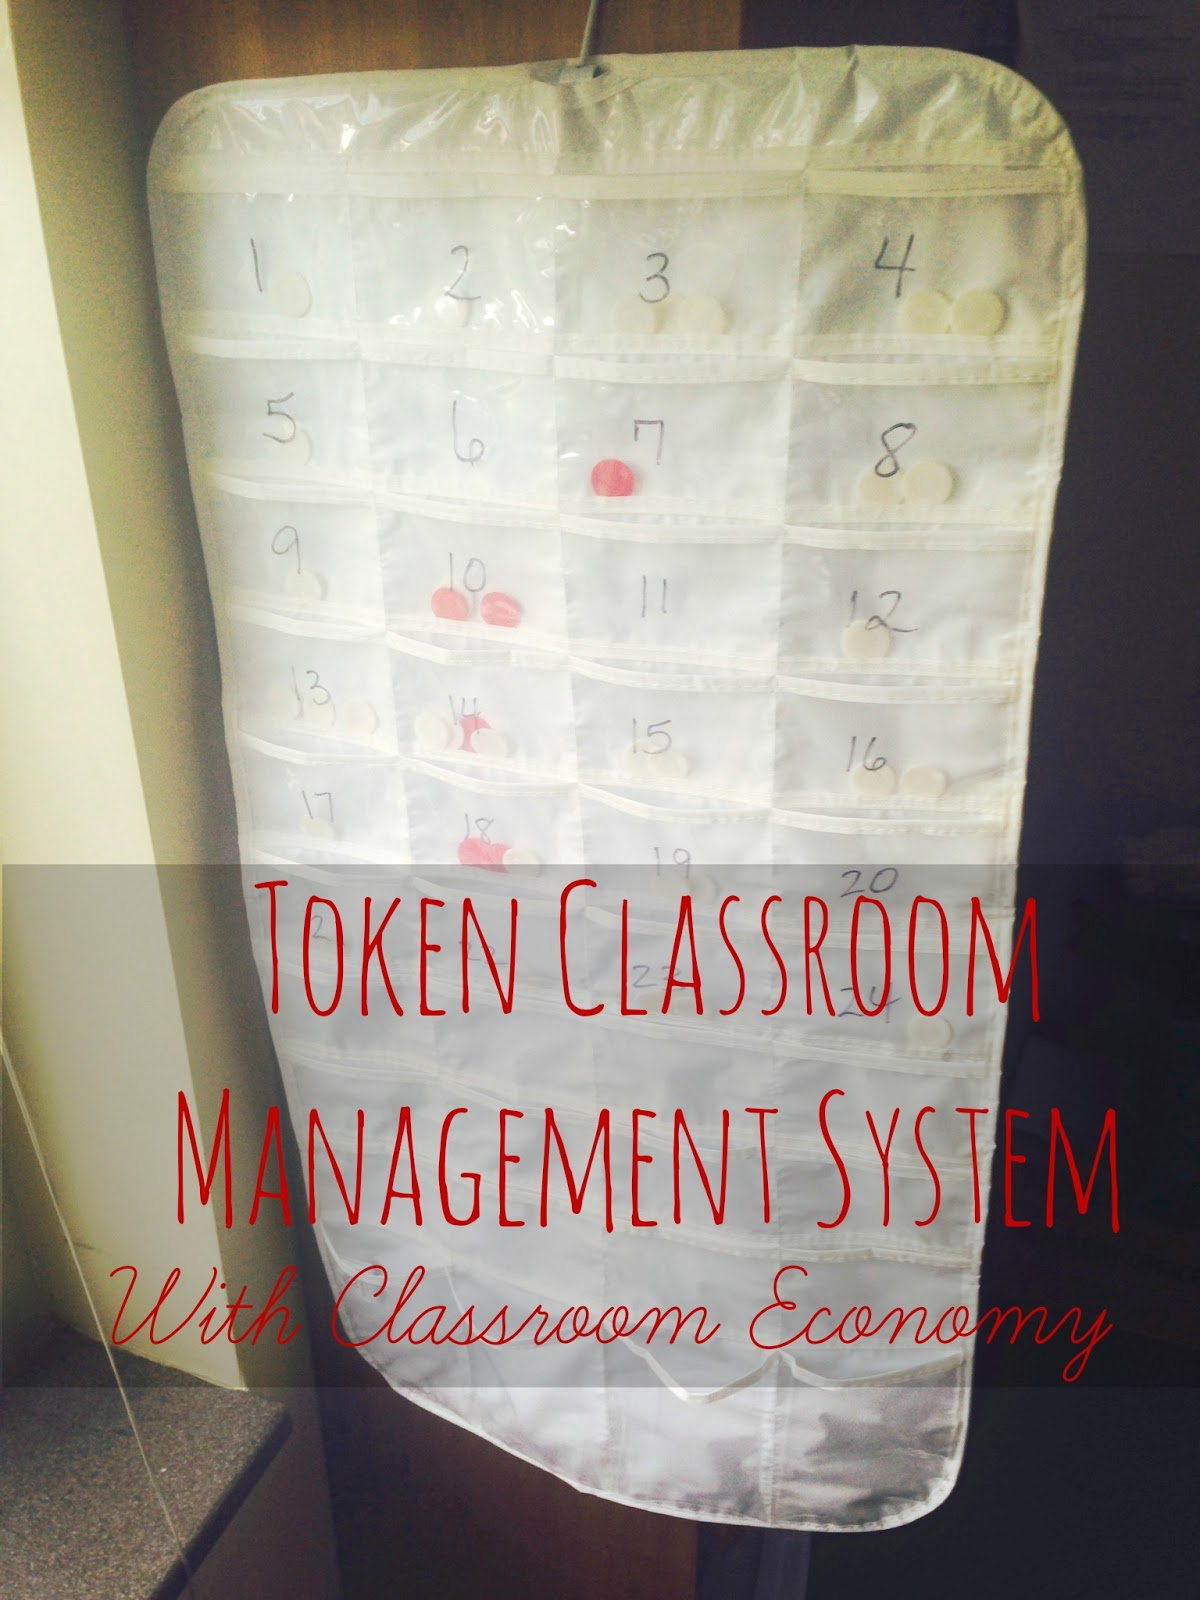 Classroom Economy Using Tokens for Classroom Management- Make it Count Blog